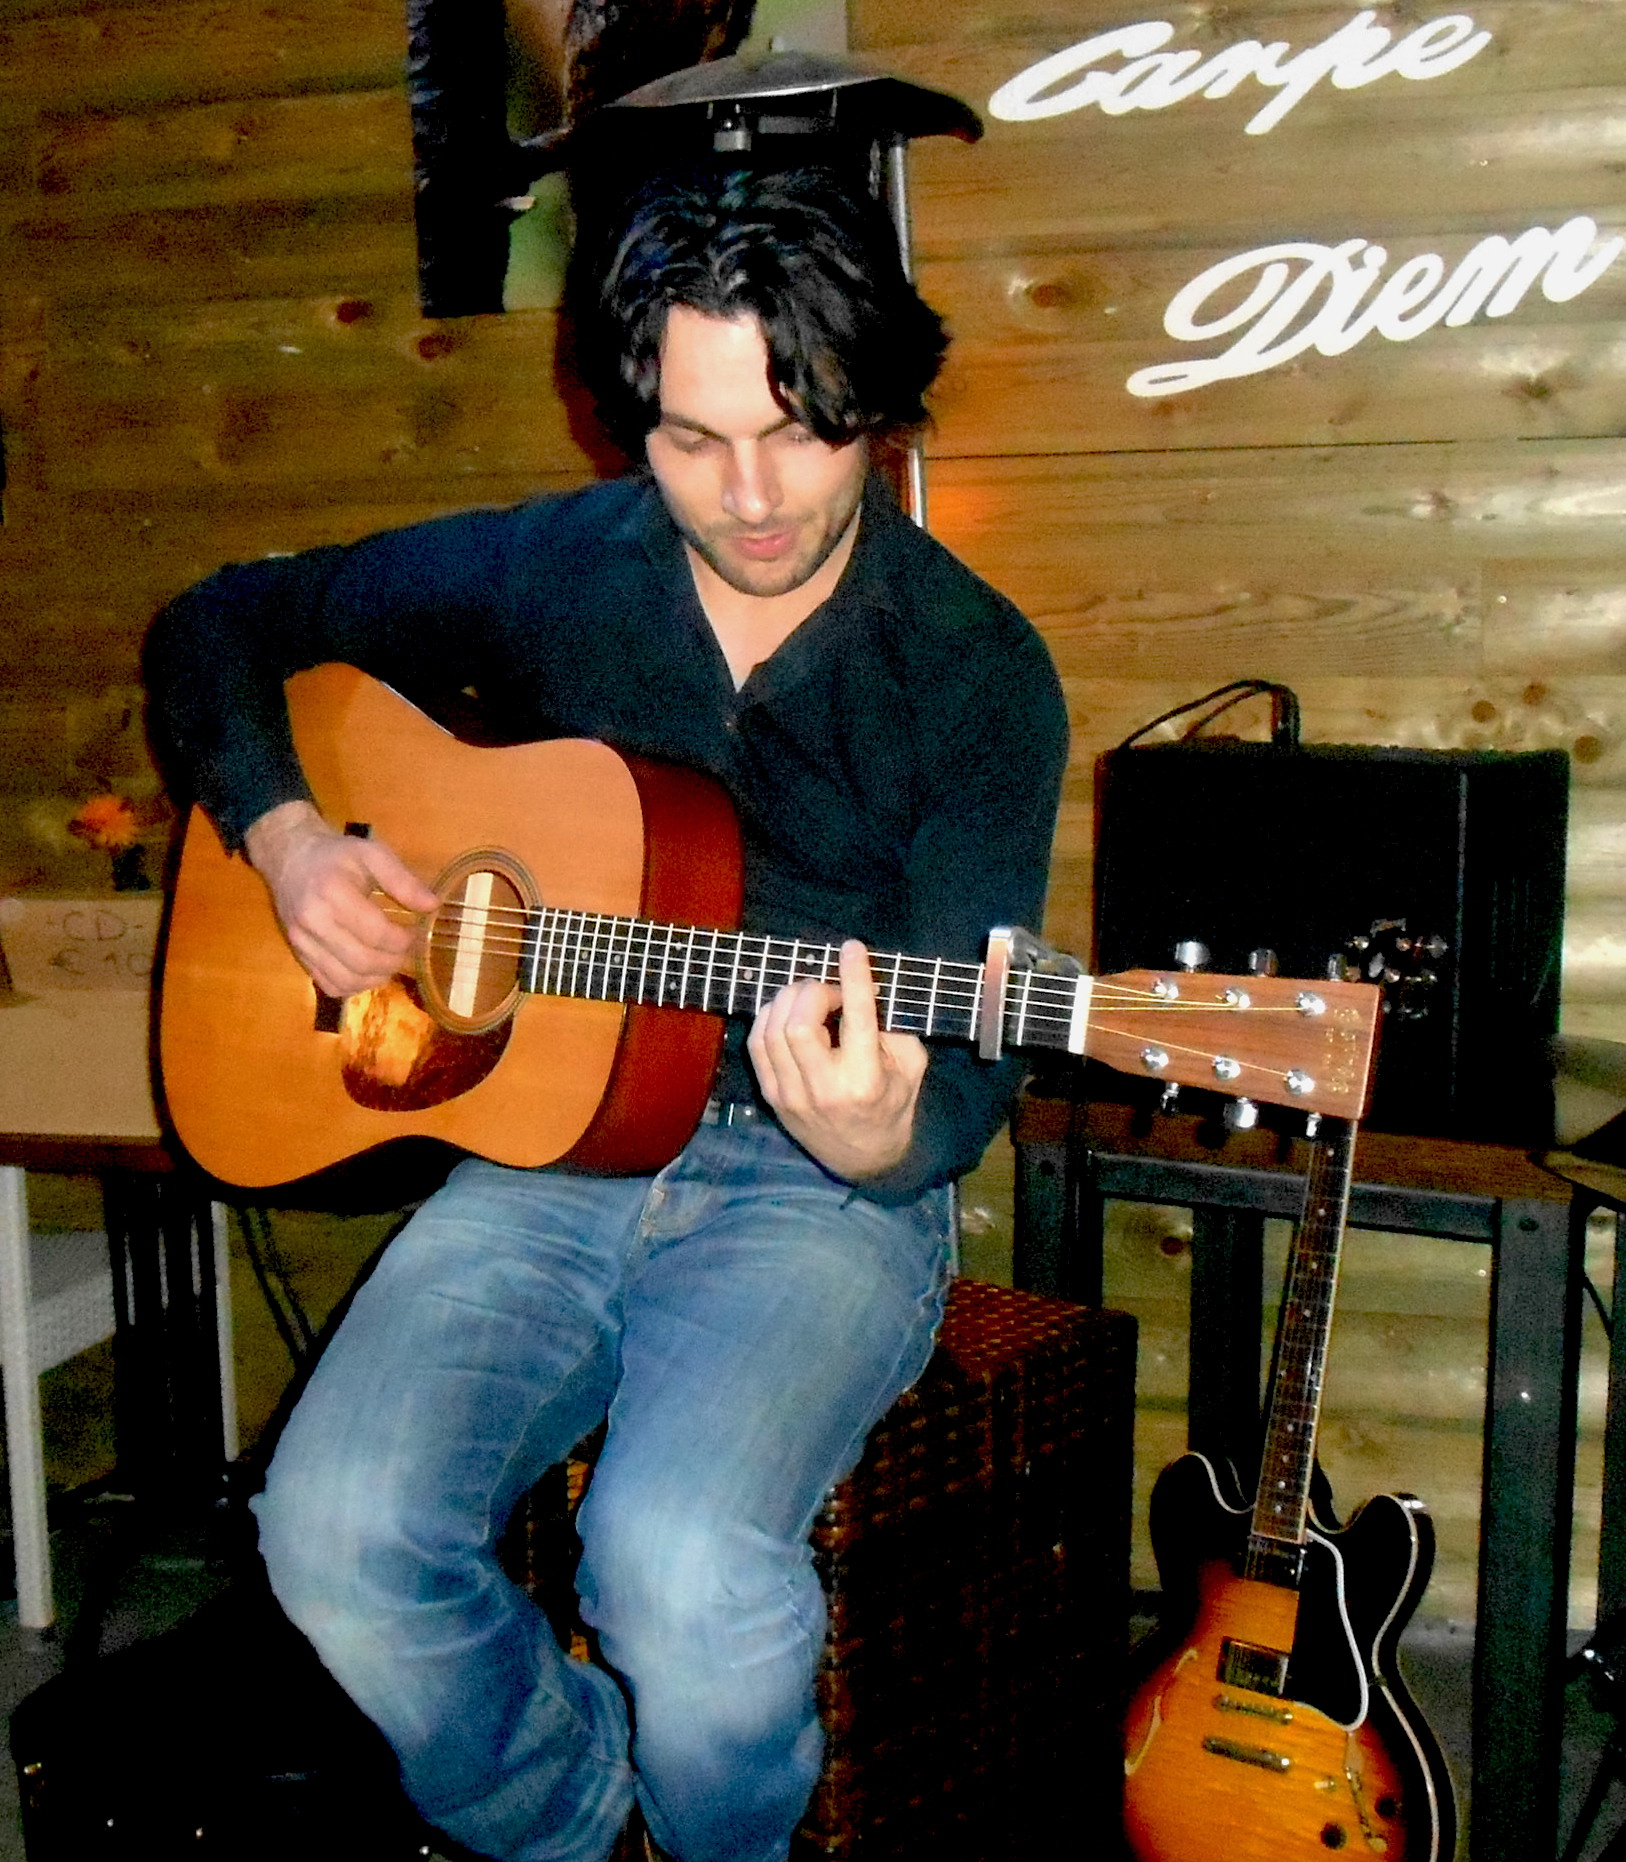 Thomas solo acoustic guitar Click to download